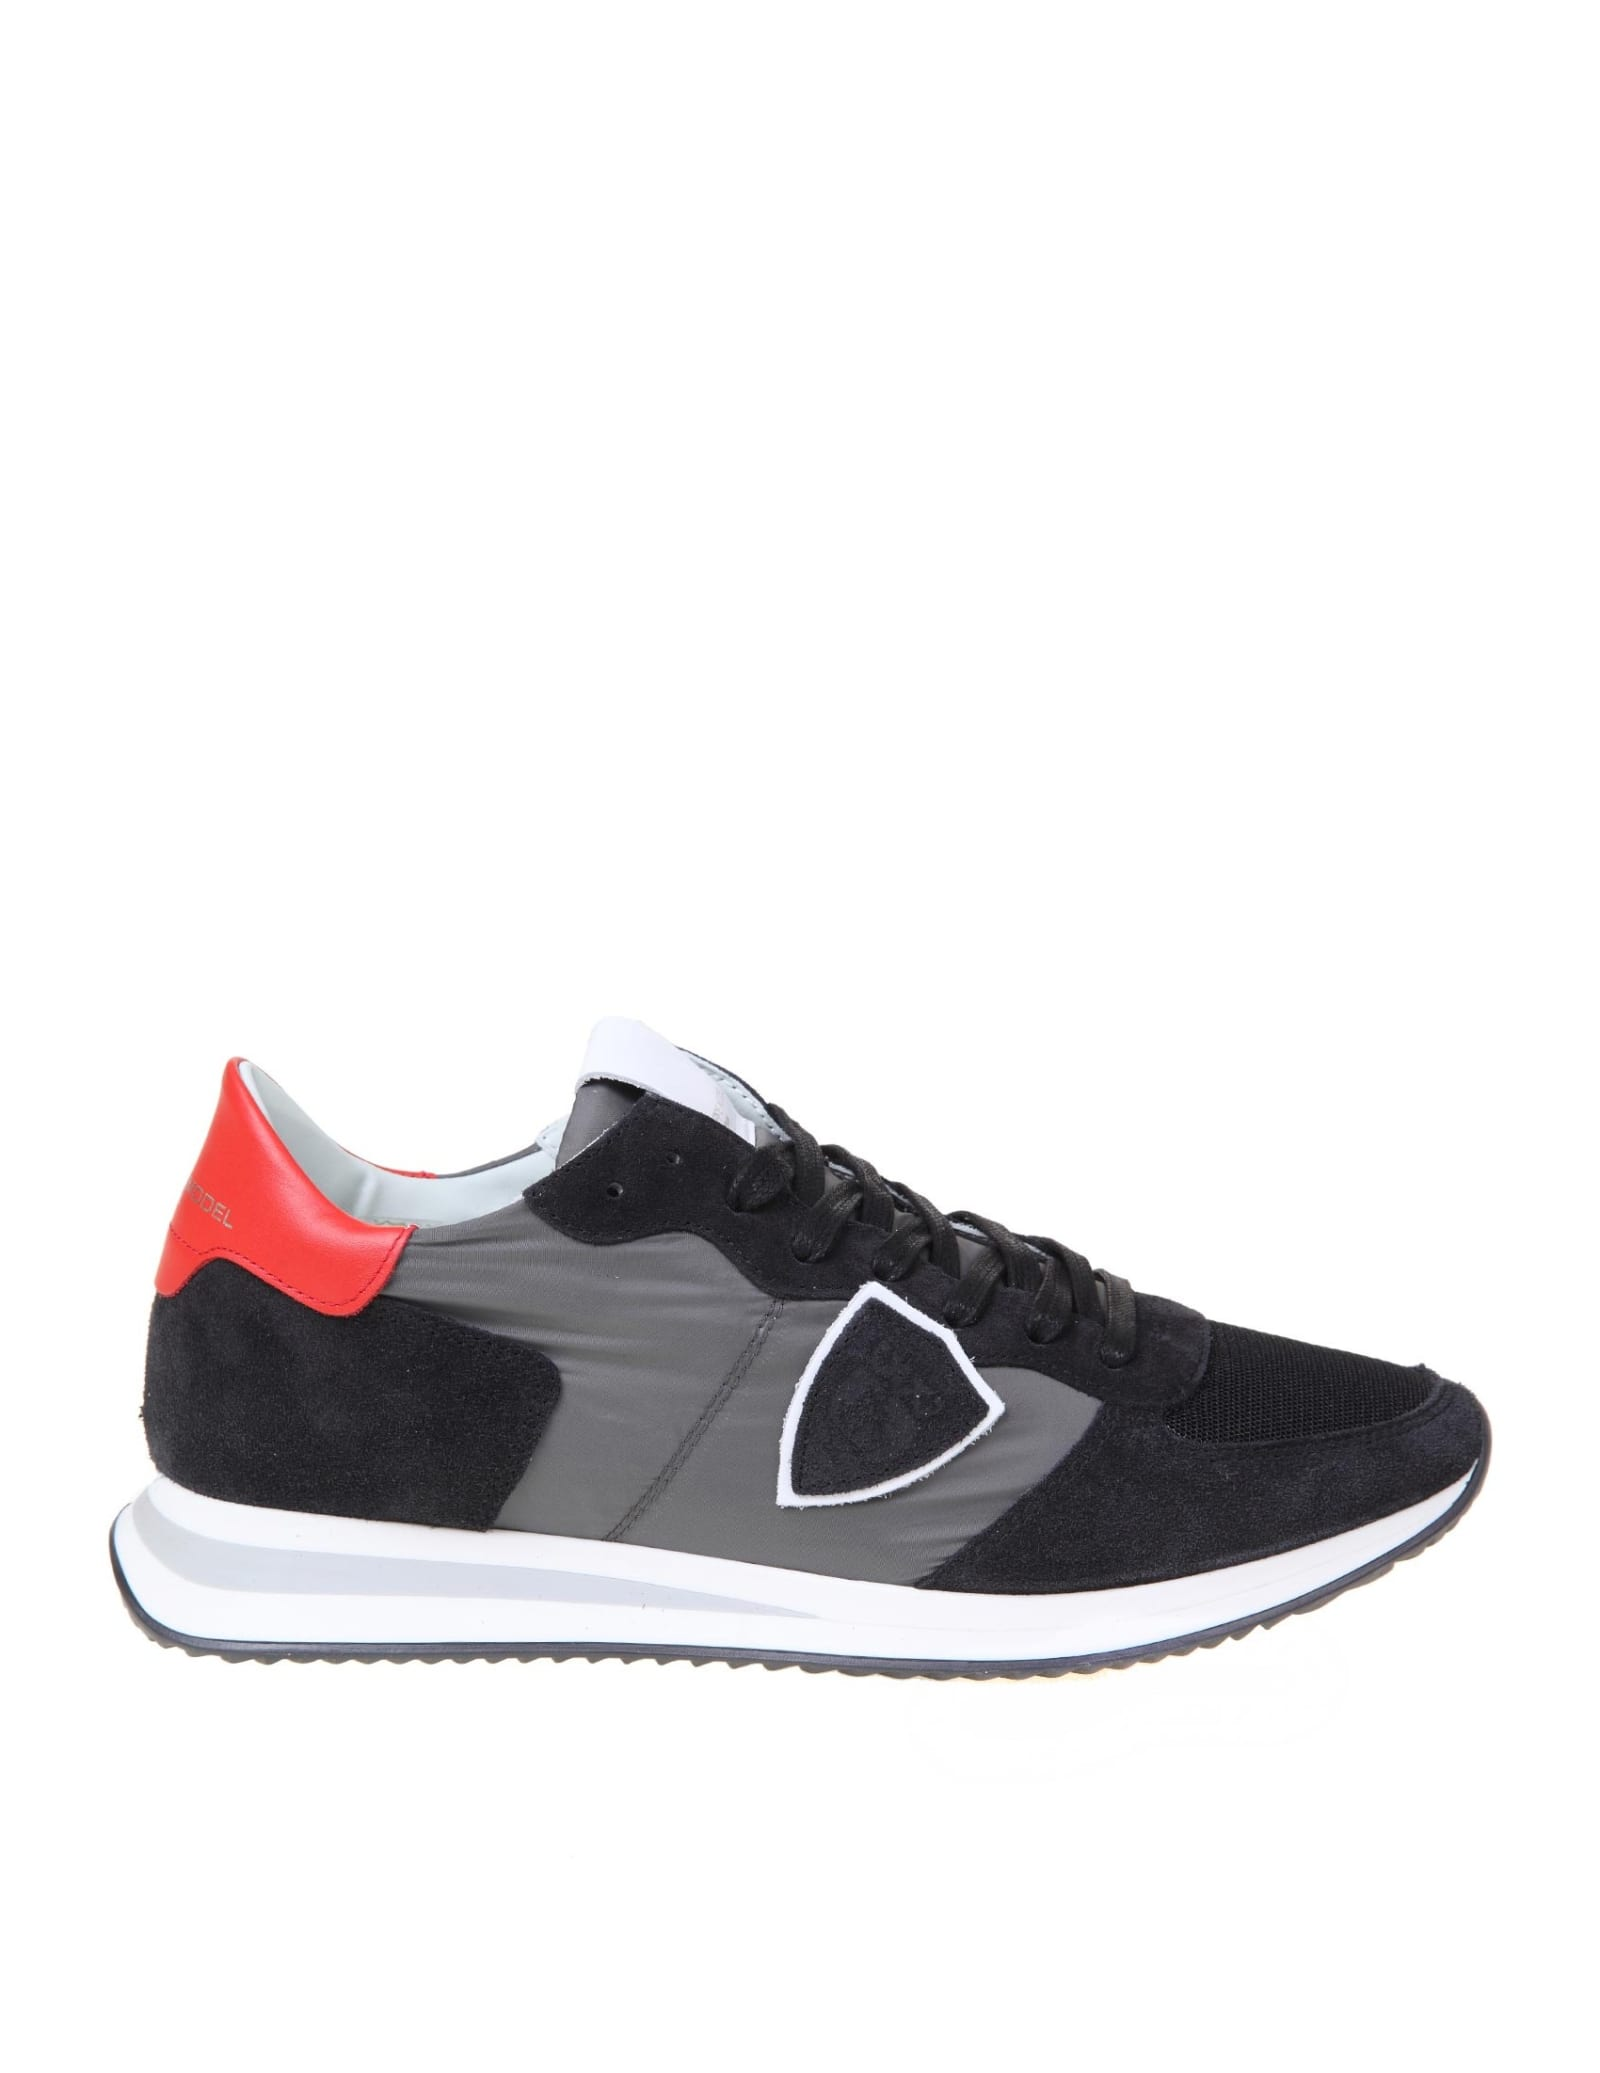 Philippe Model Trpx Suede And Nylon Sneakers